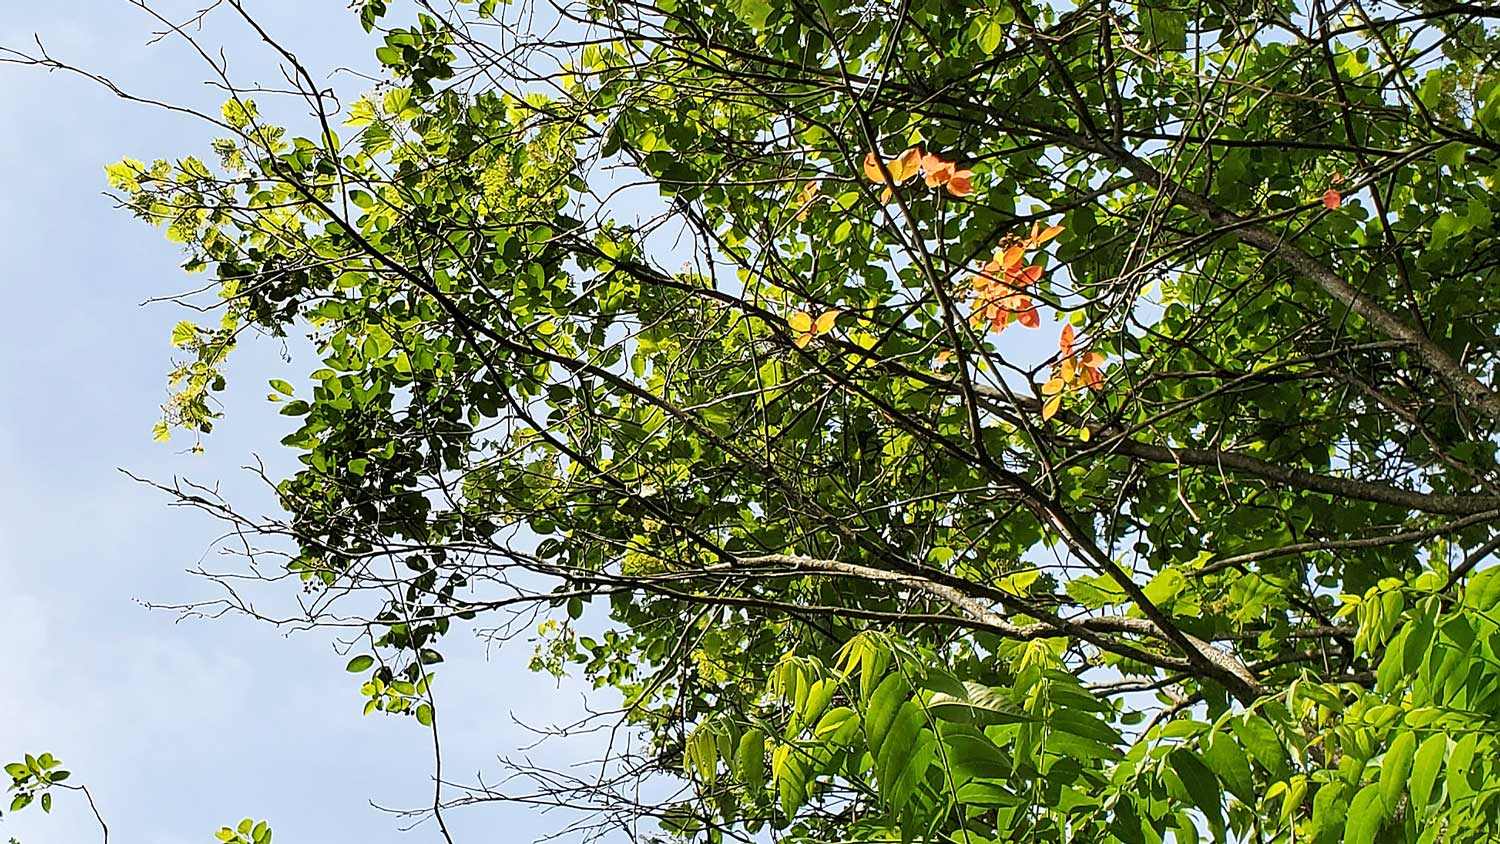 A few orange leaves against green leaves and blue sky, high up in the trees at Veteran Acres Park.